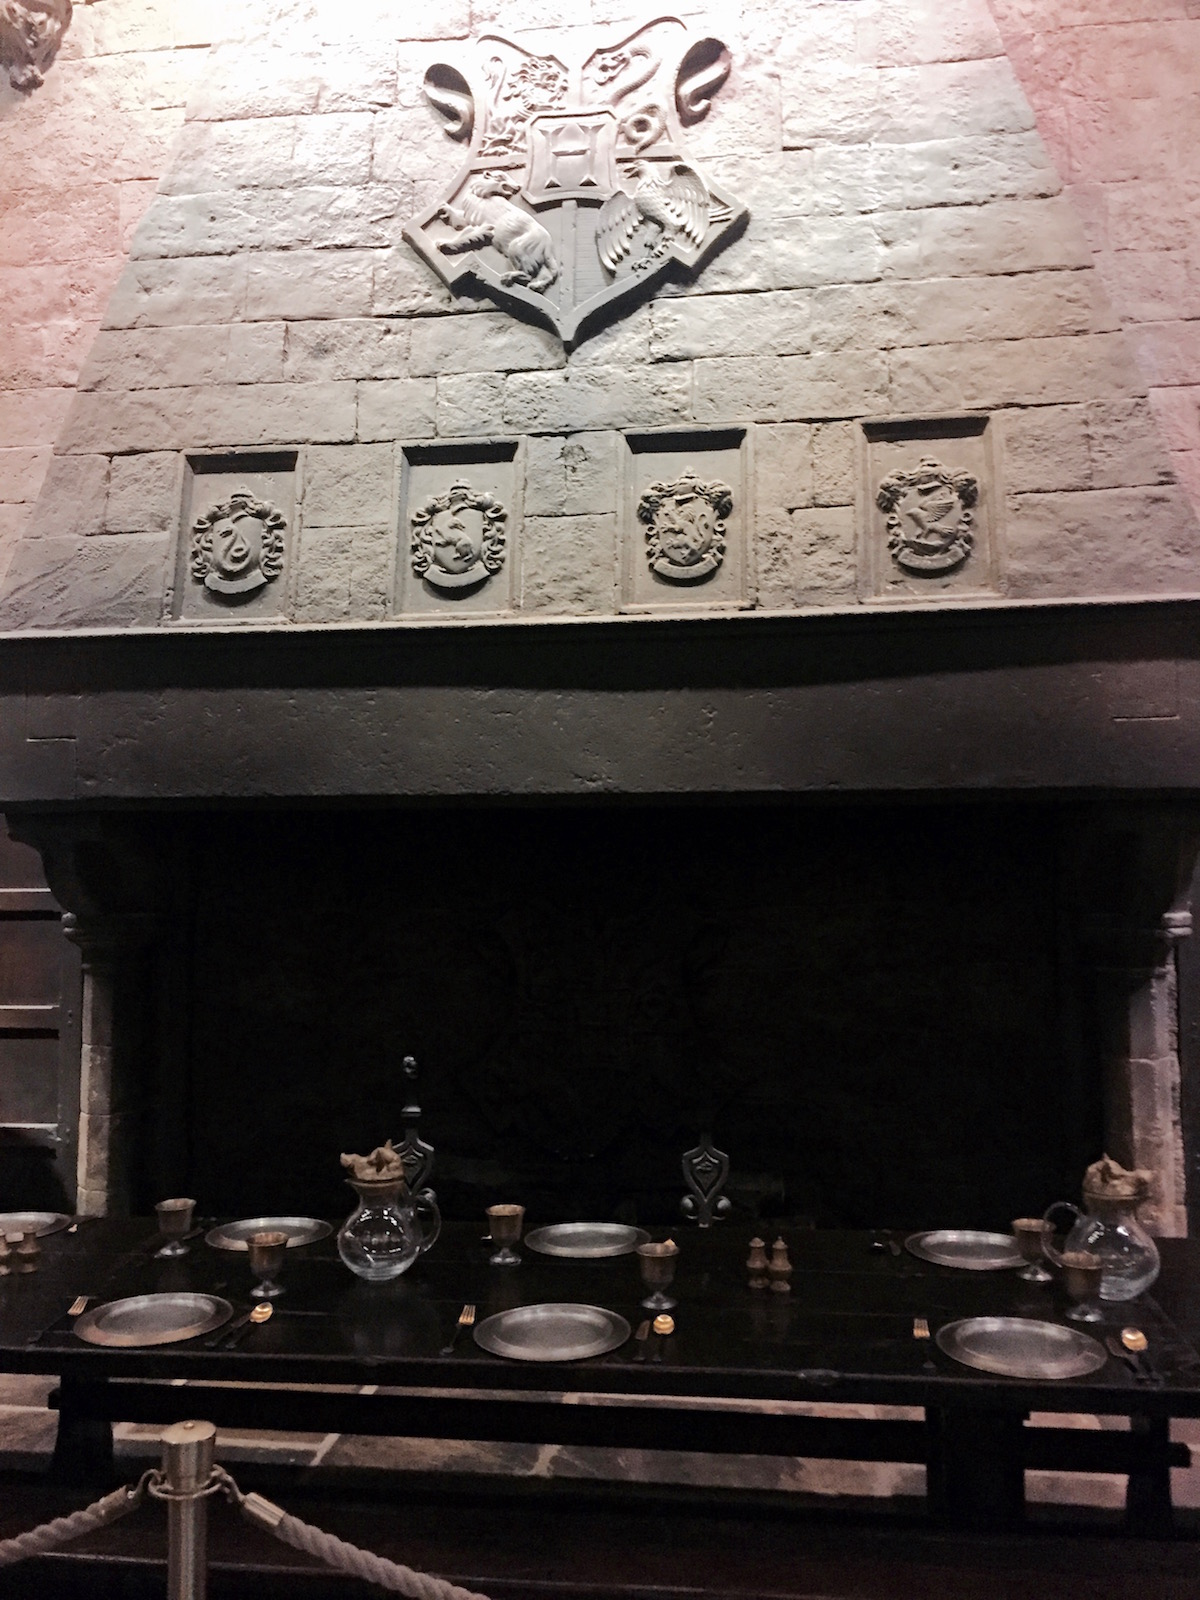 Meine Erfahrungen in der Harry Potter #WBstudiotour auf www.theblondelion.com Warner Brother Studio Tour London Leavesden